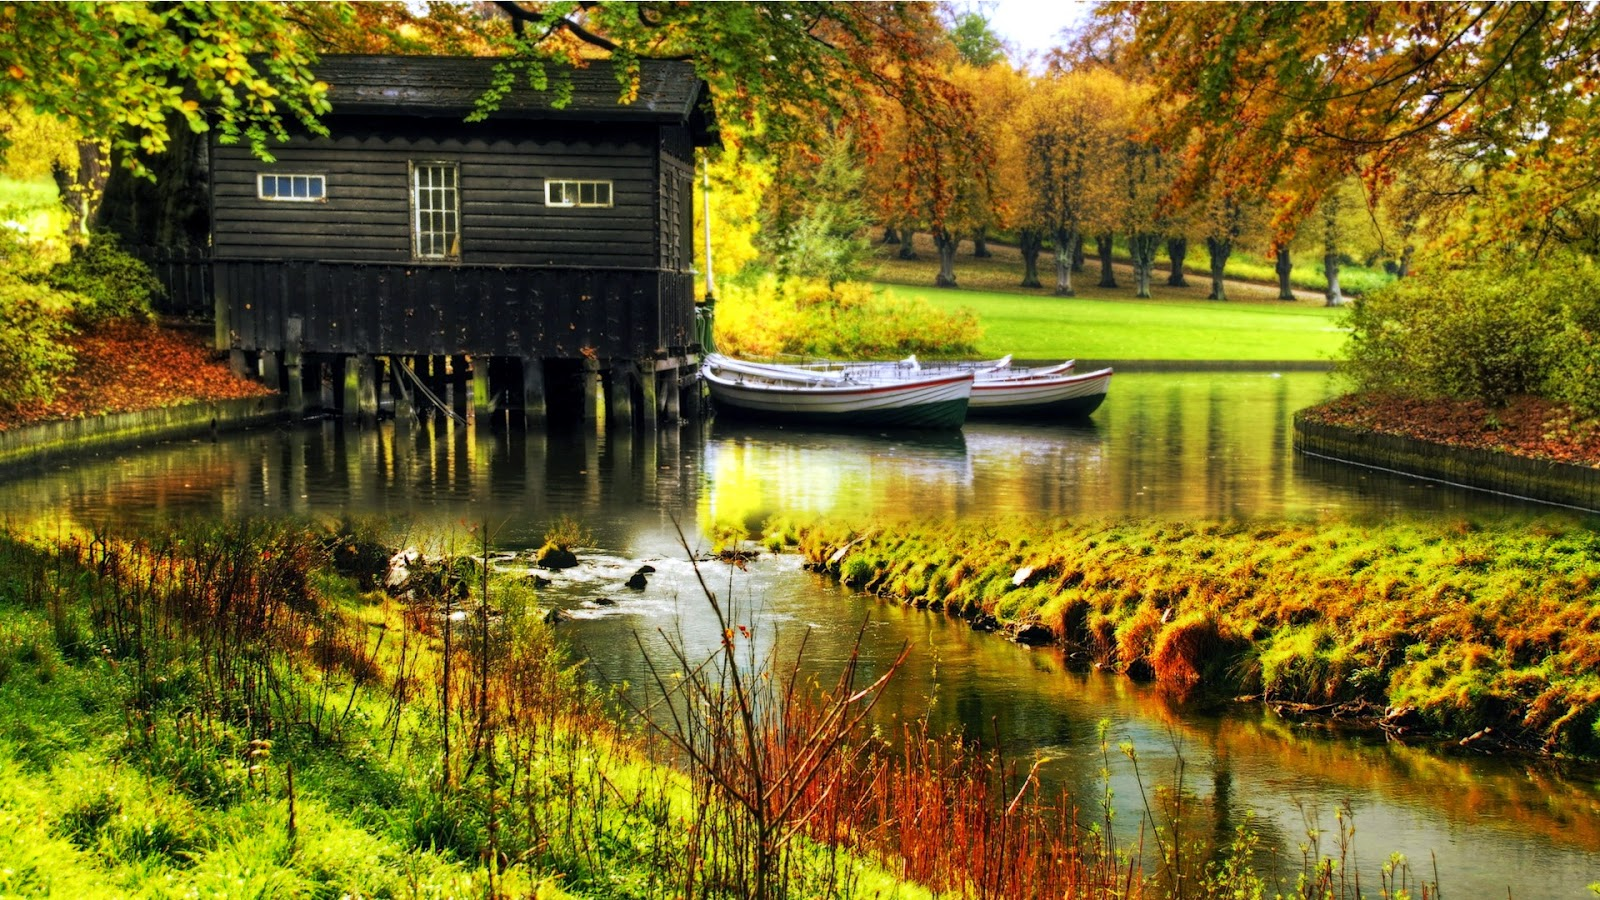 Lake view nature wallpaper download for free Free HD Wallpapers